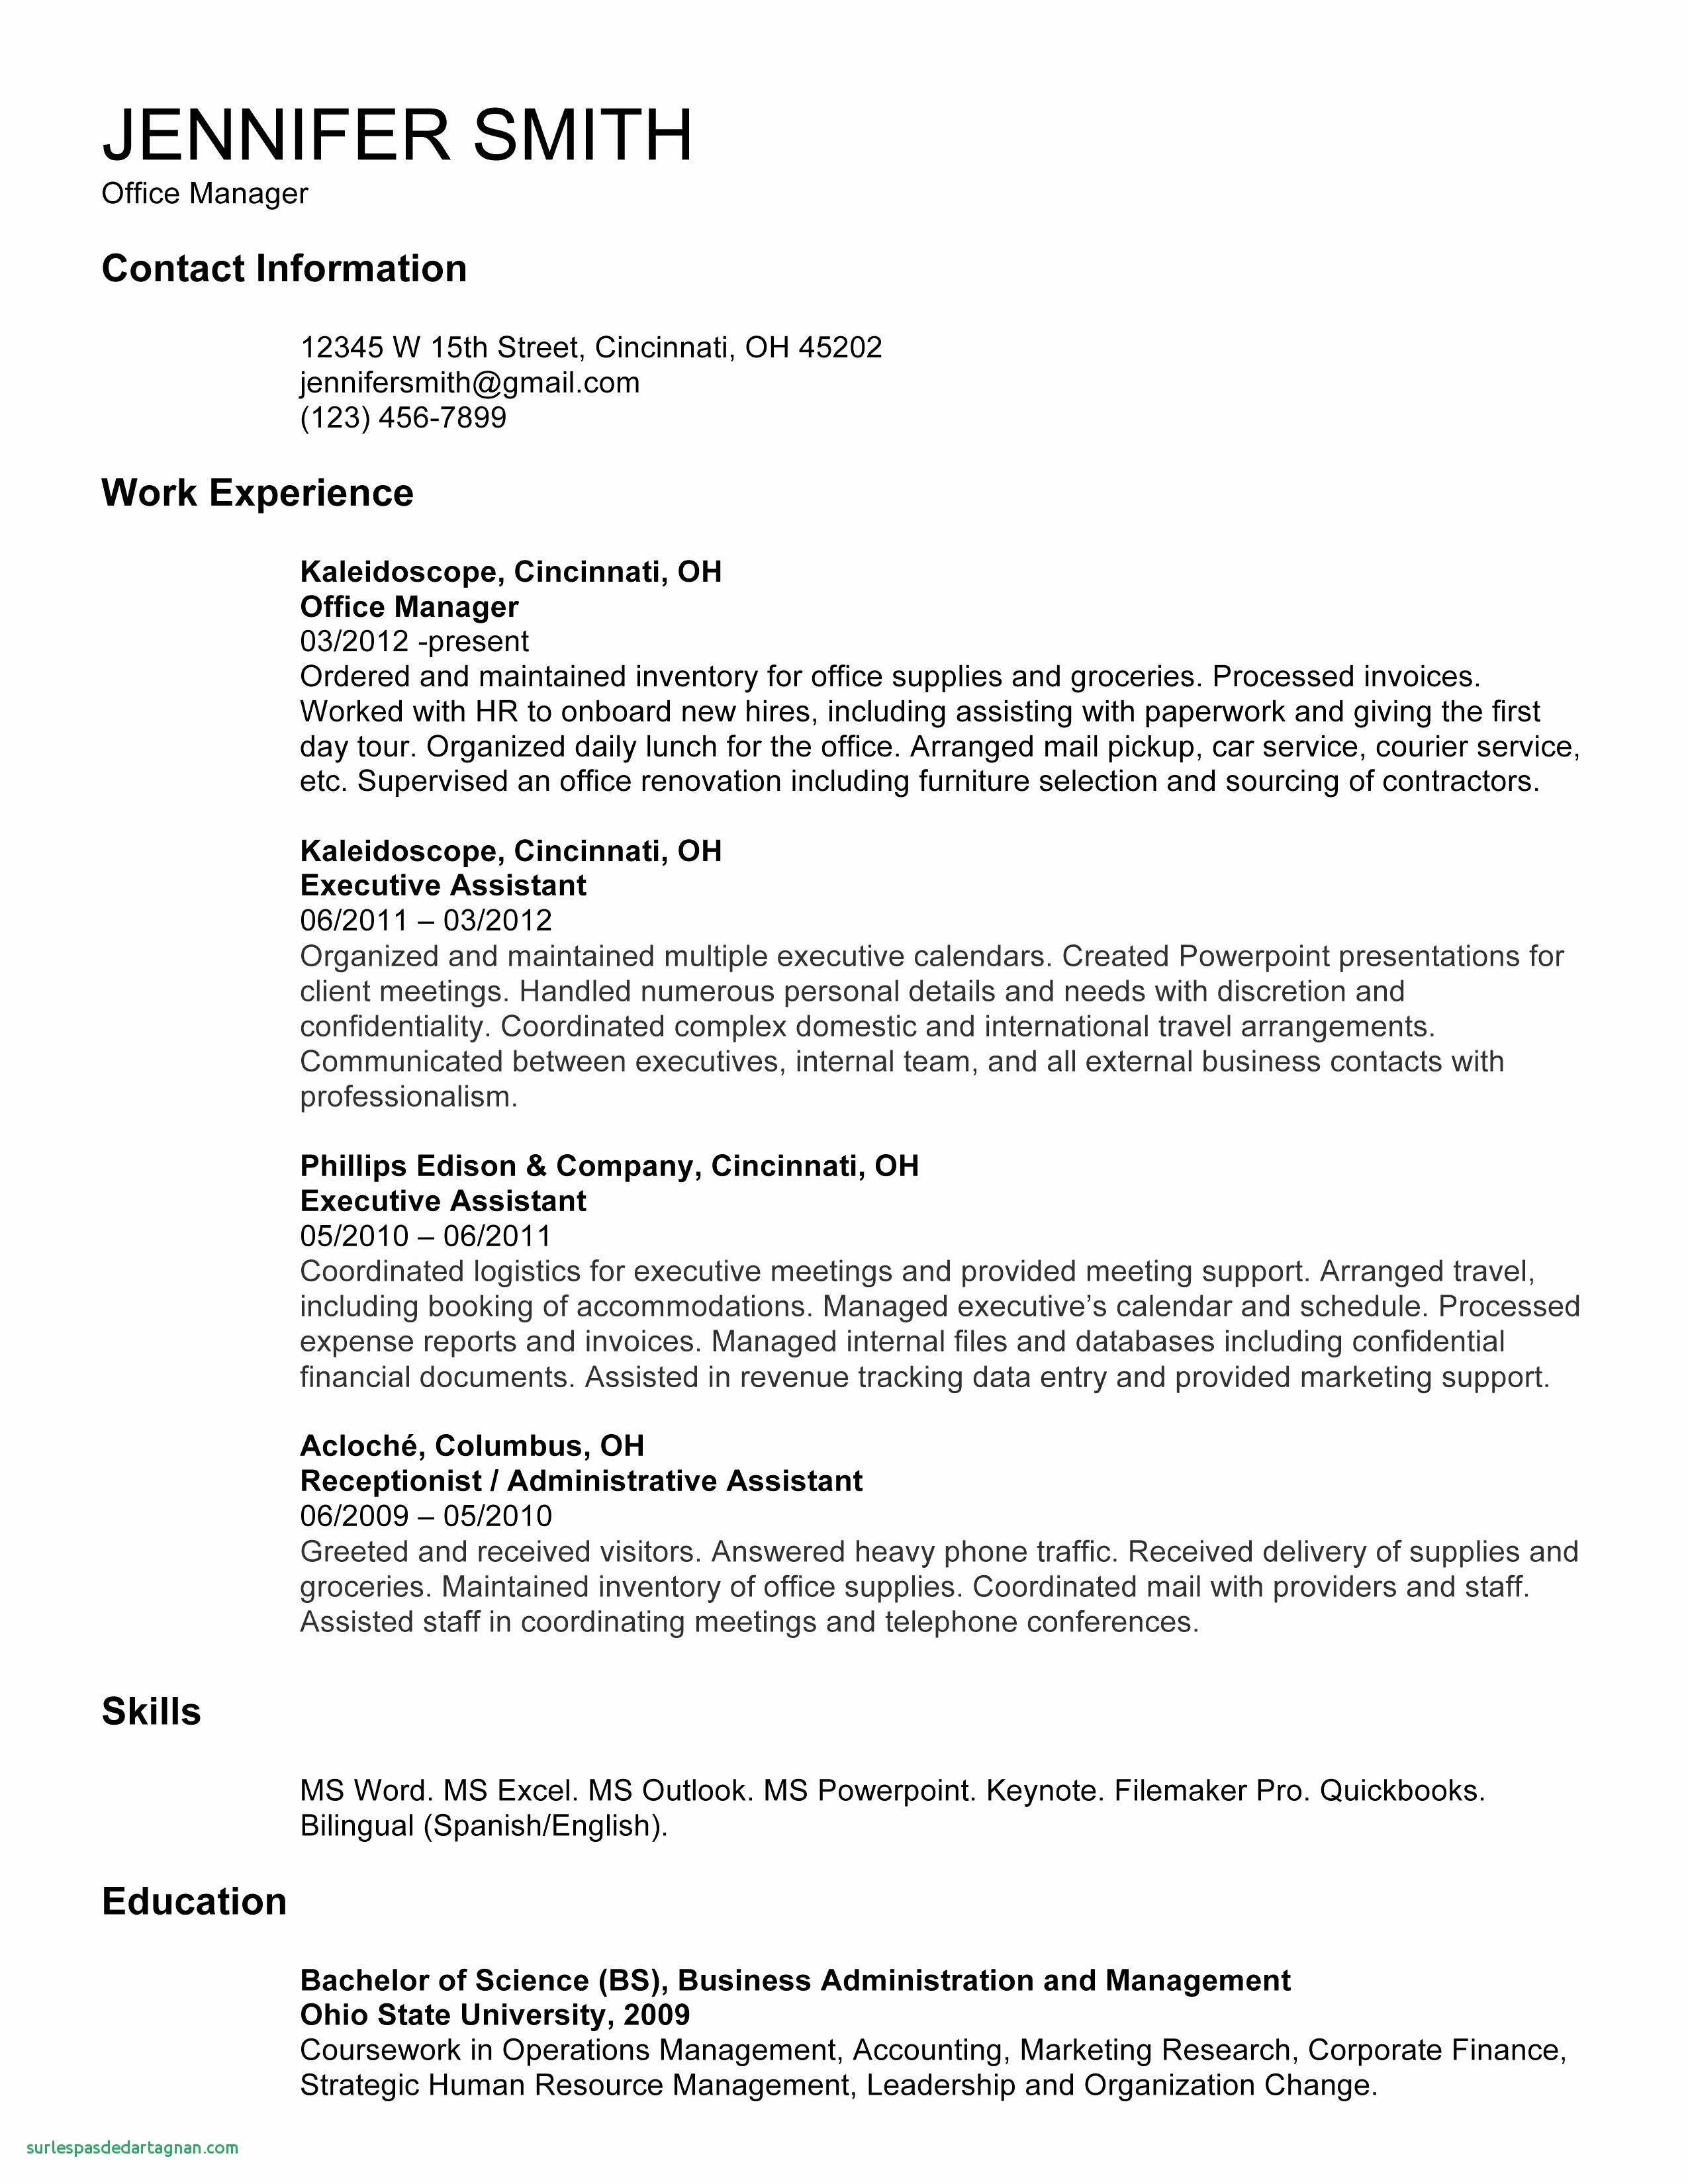 Leeds School Of Business Resume Template - Google Resume Template Inspirational Best Resume Template for